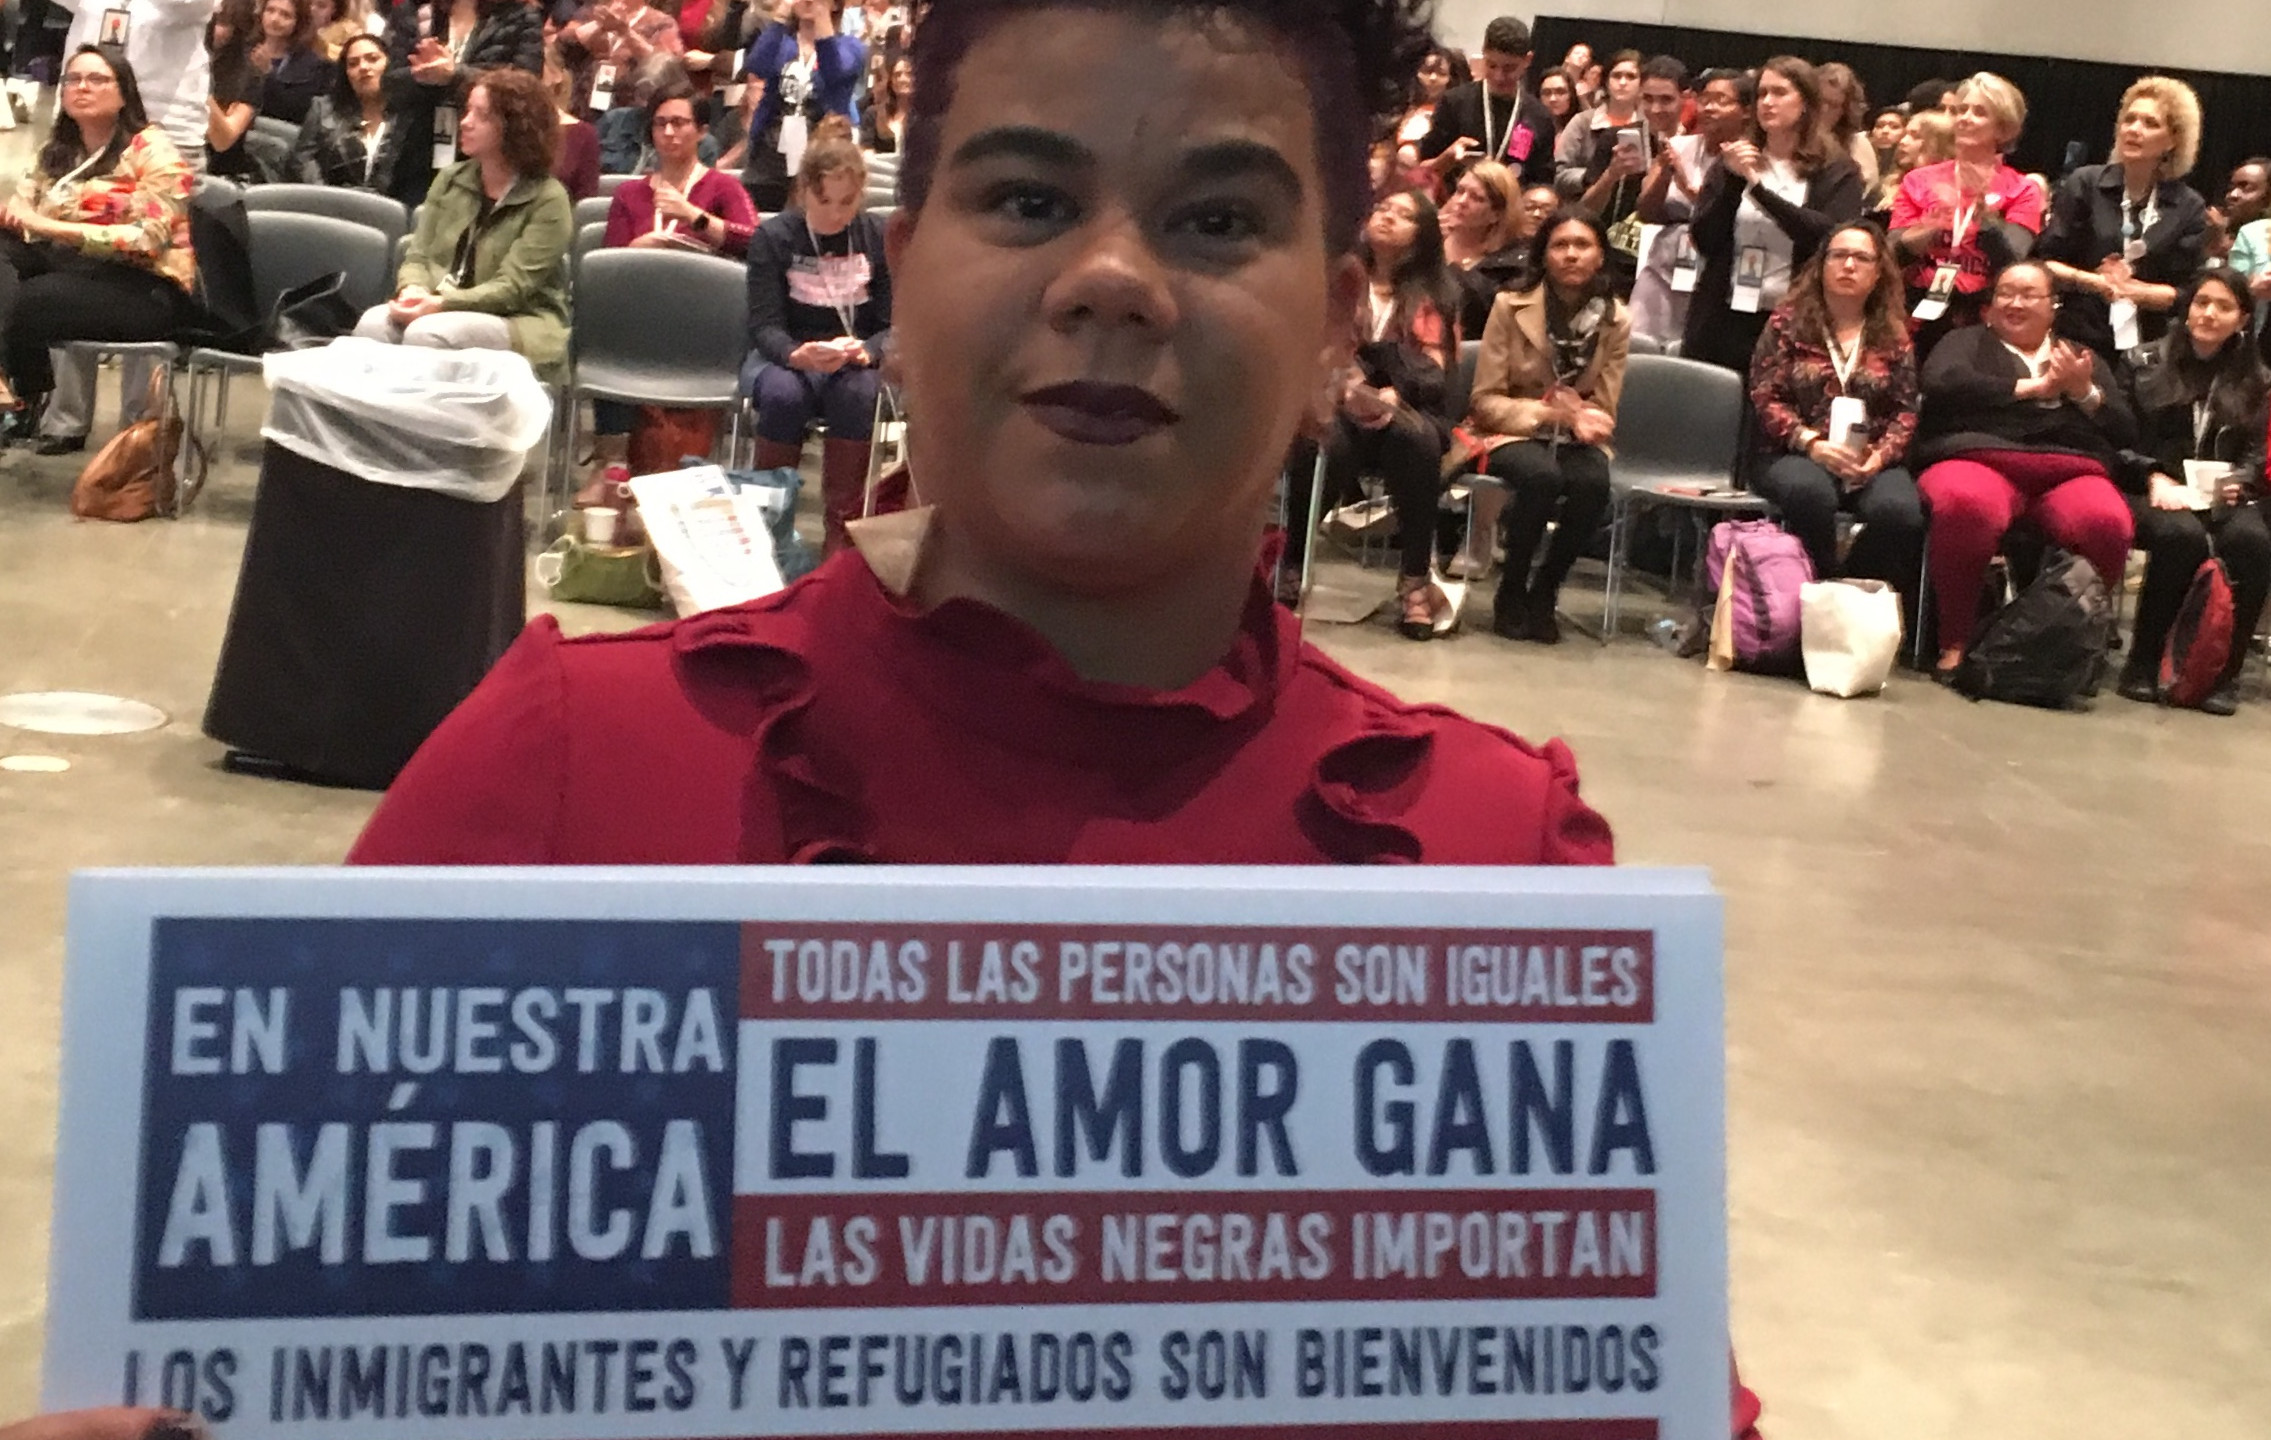 Rose Clemente spoke passionately on opening night about the plight of Puerto Rico.